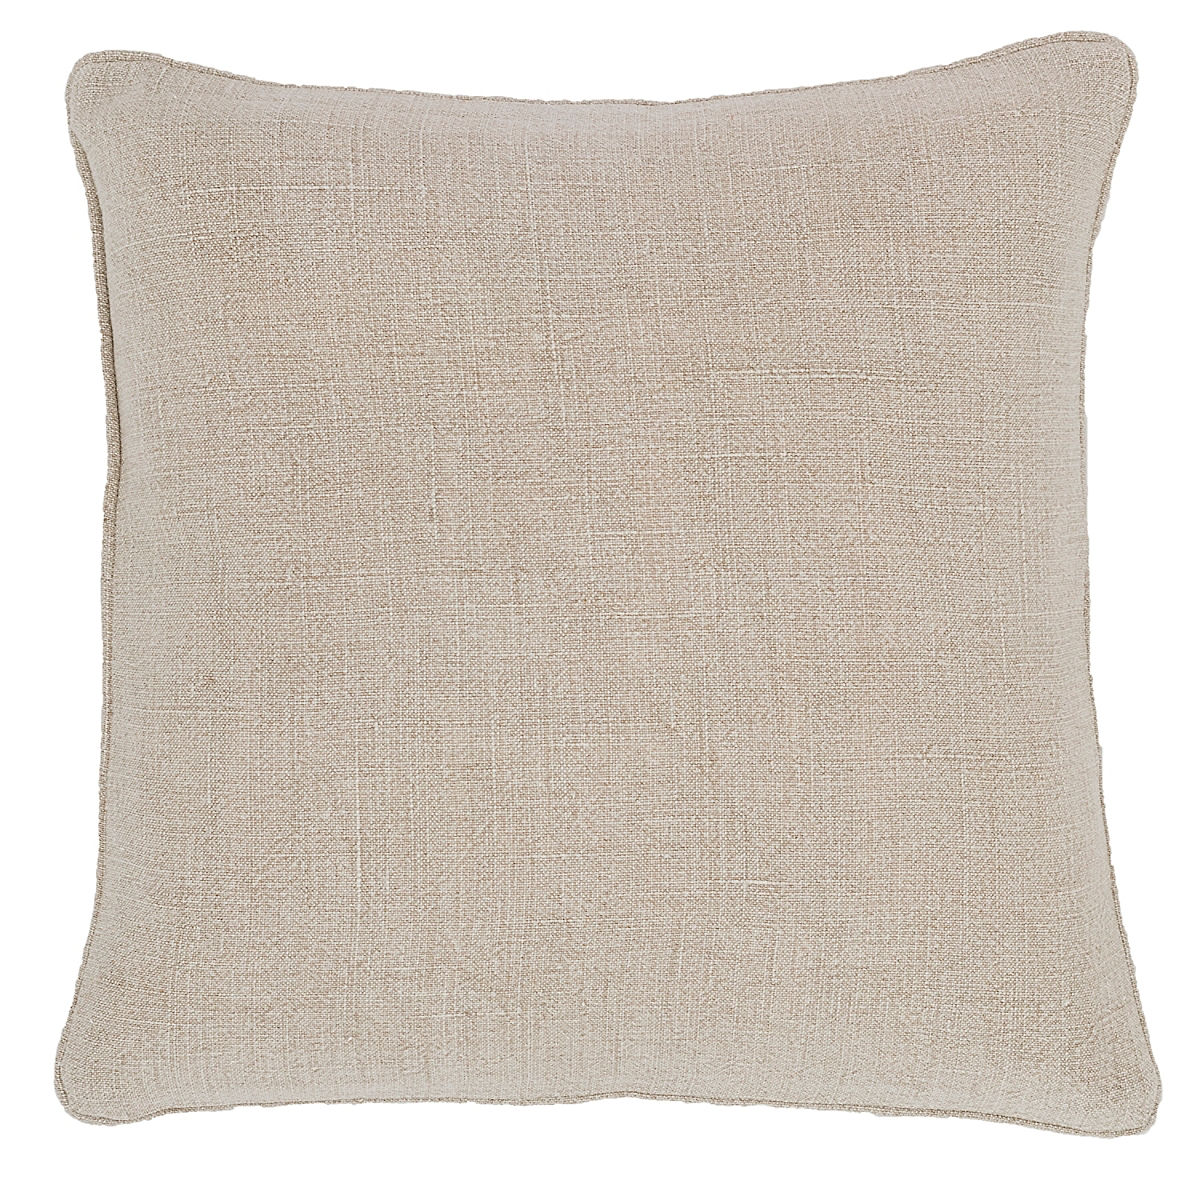 Stone Washed Linen Natural Decorative Pillow